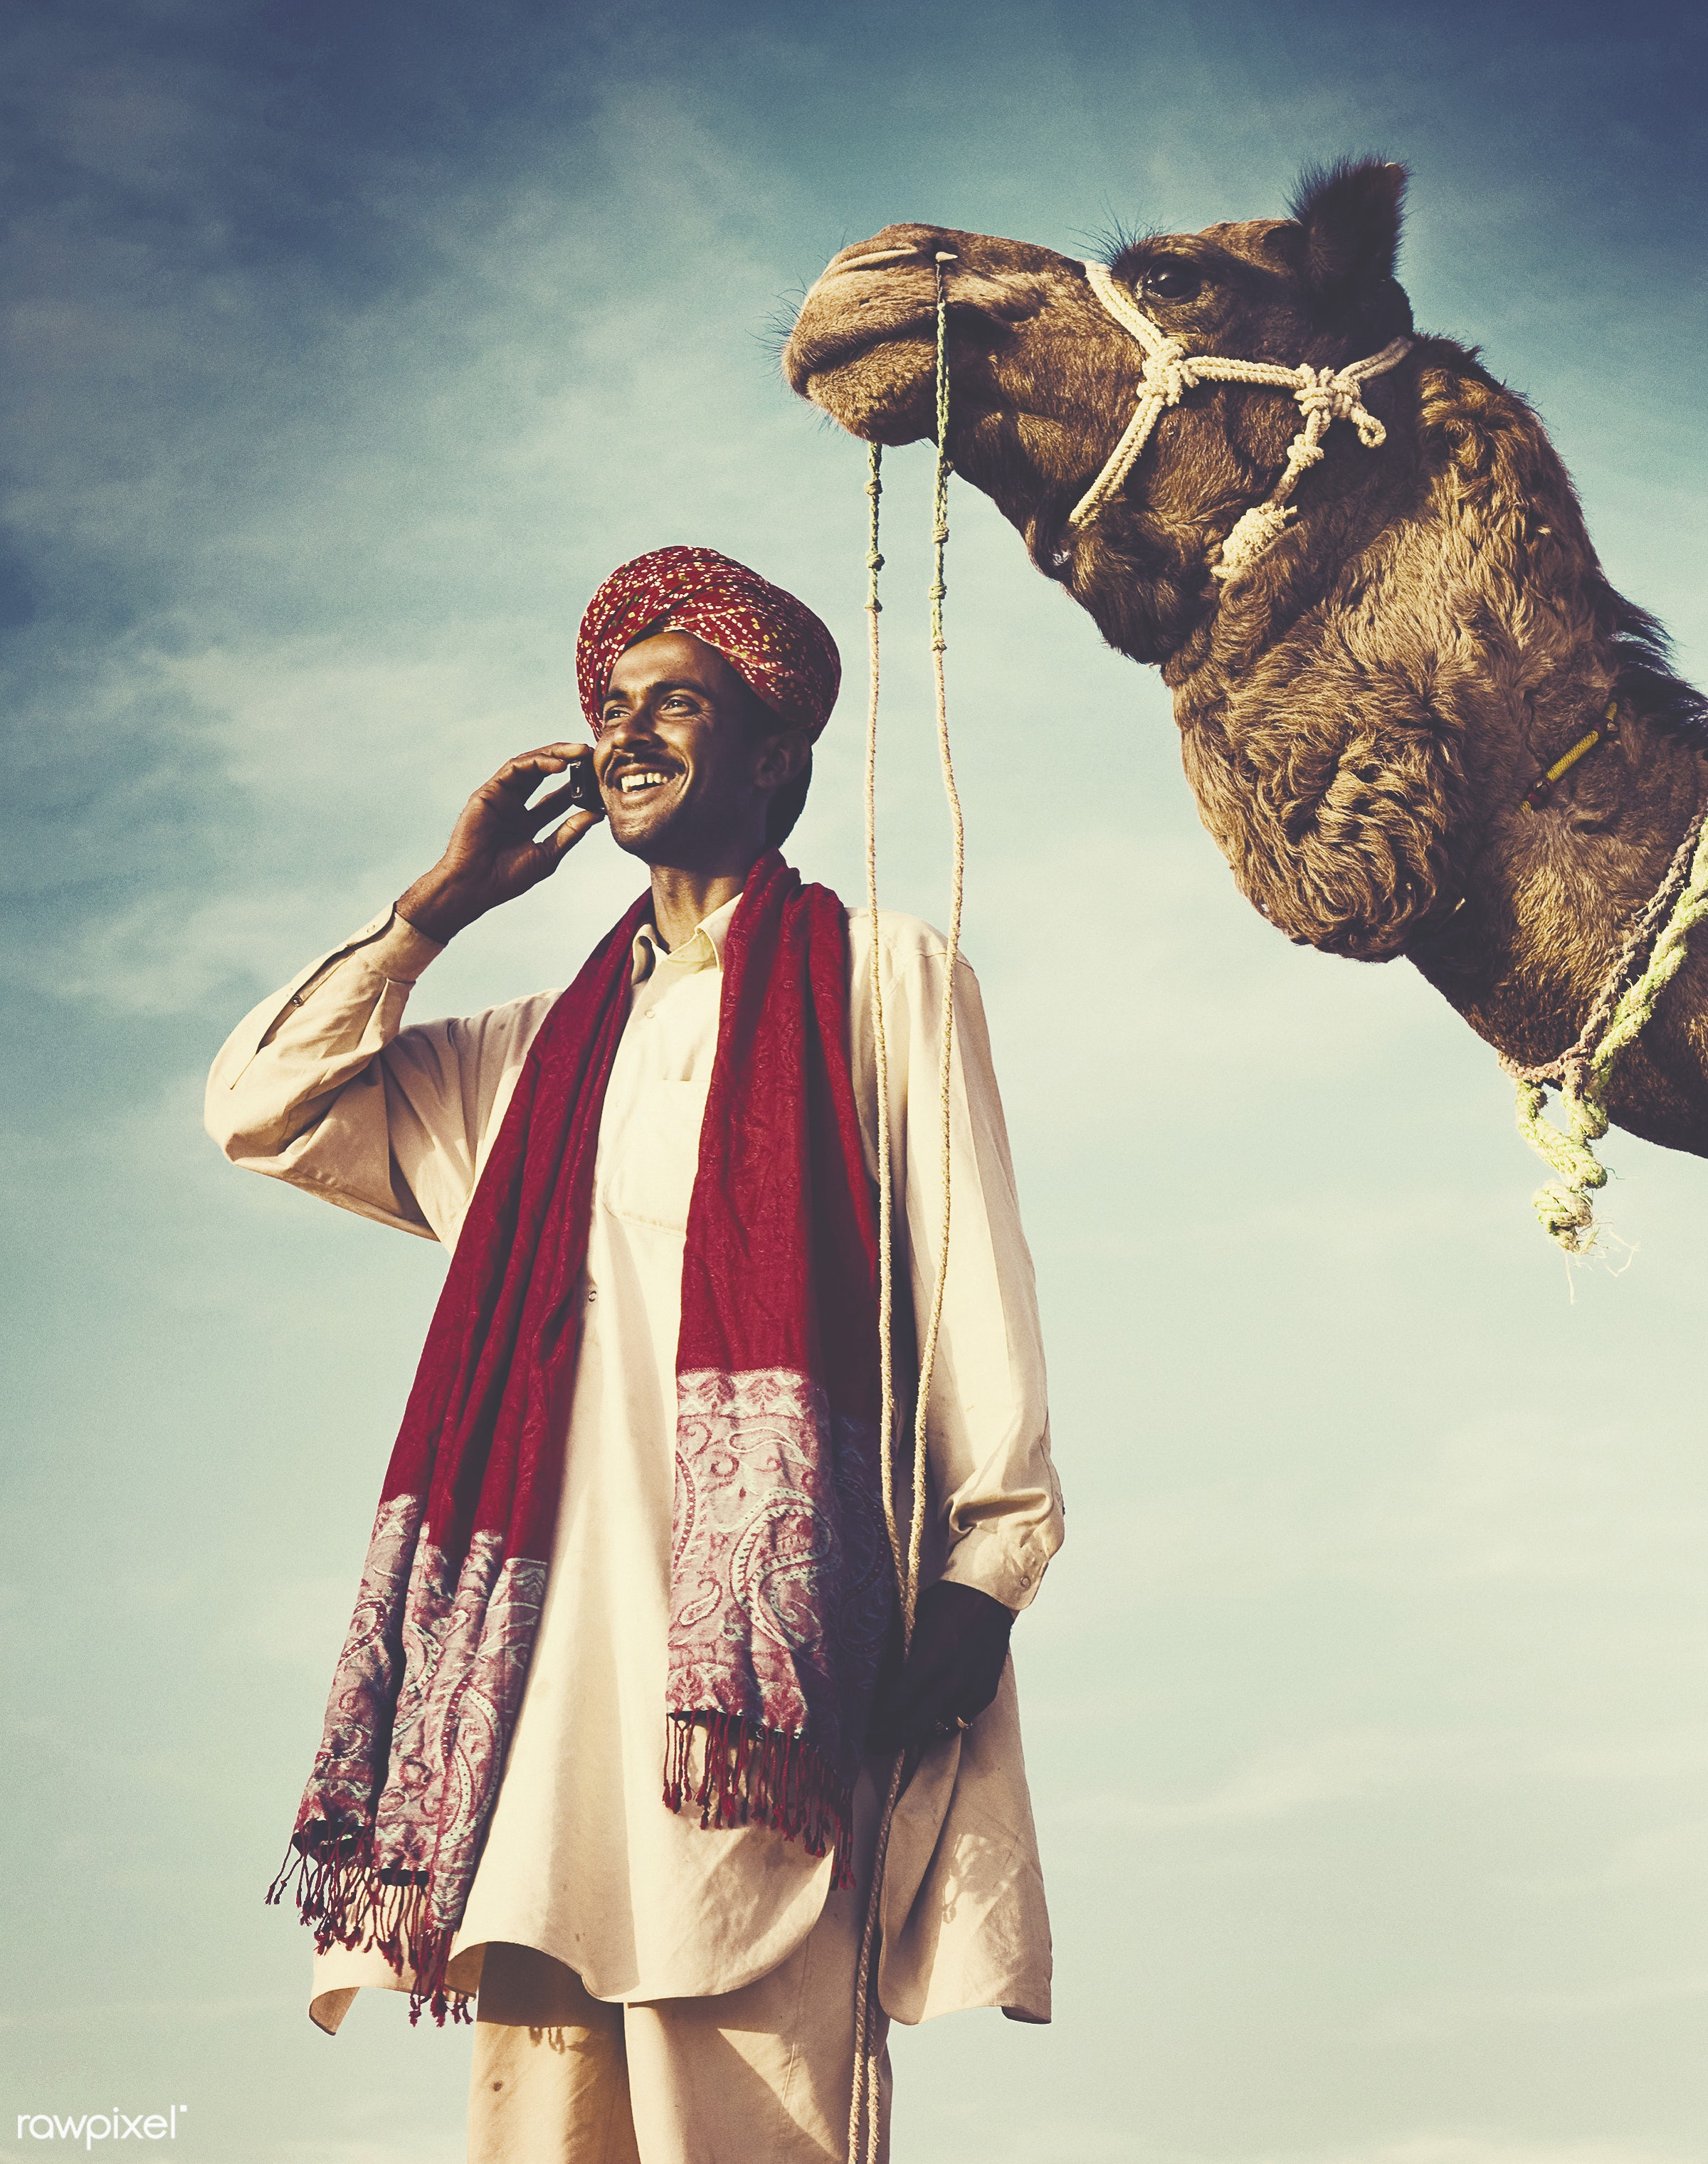 Indian man on the phone with camel - animal, asia, beauty in nature, business, businessman, calling, camel, cellphone,...